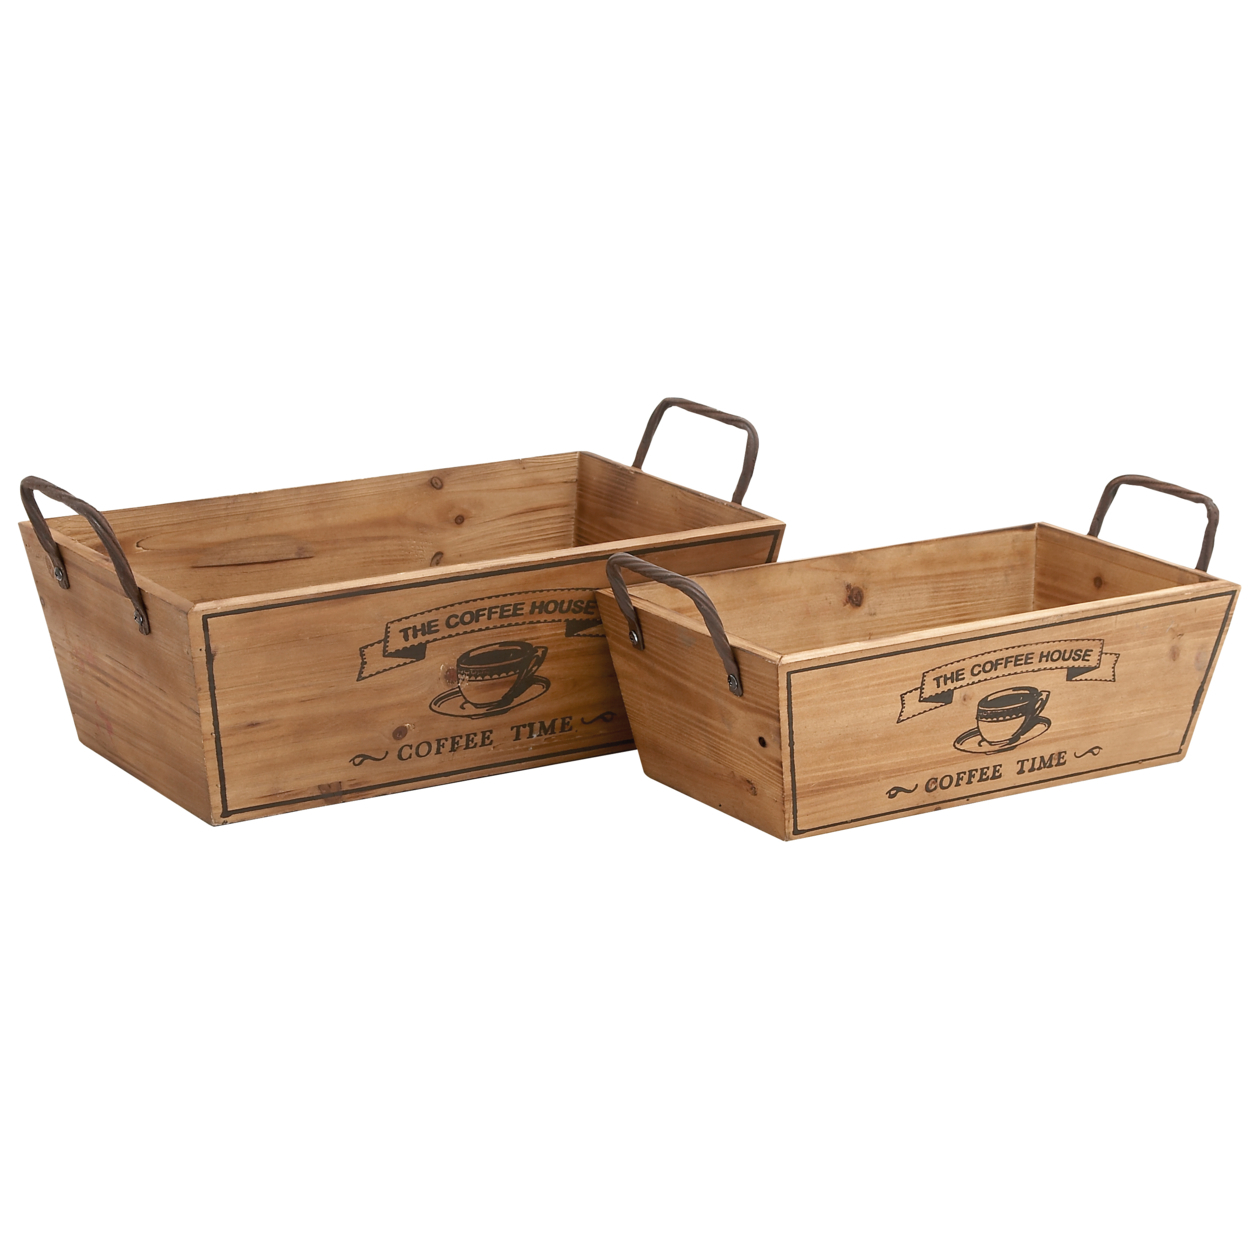 Benzara Set of Two Classy Wooden with Metal Handle Wine Trays 58995326c98fc433fa234f38